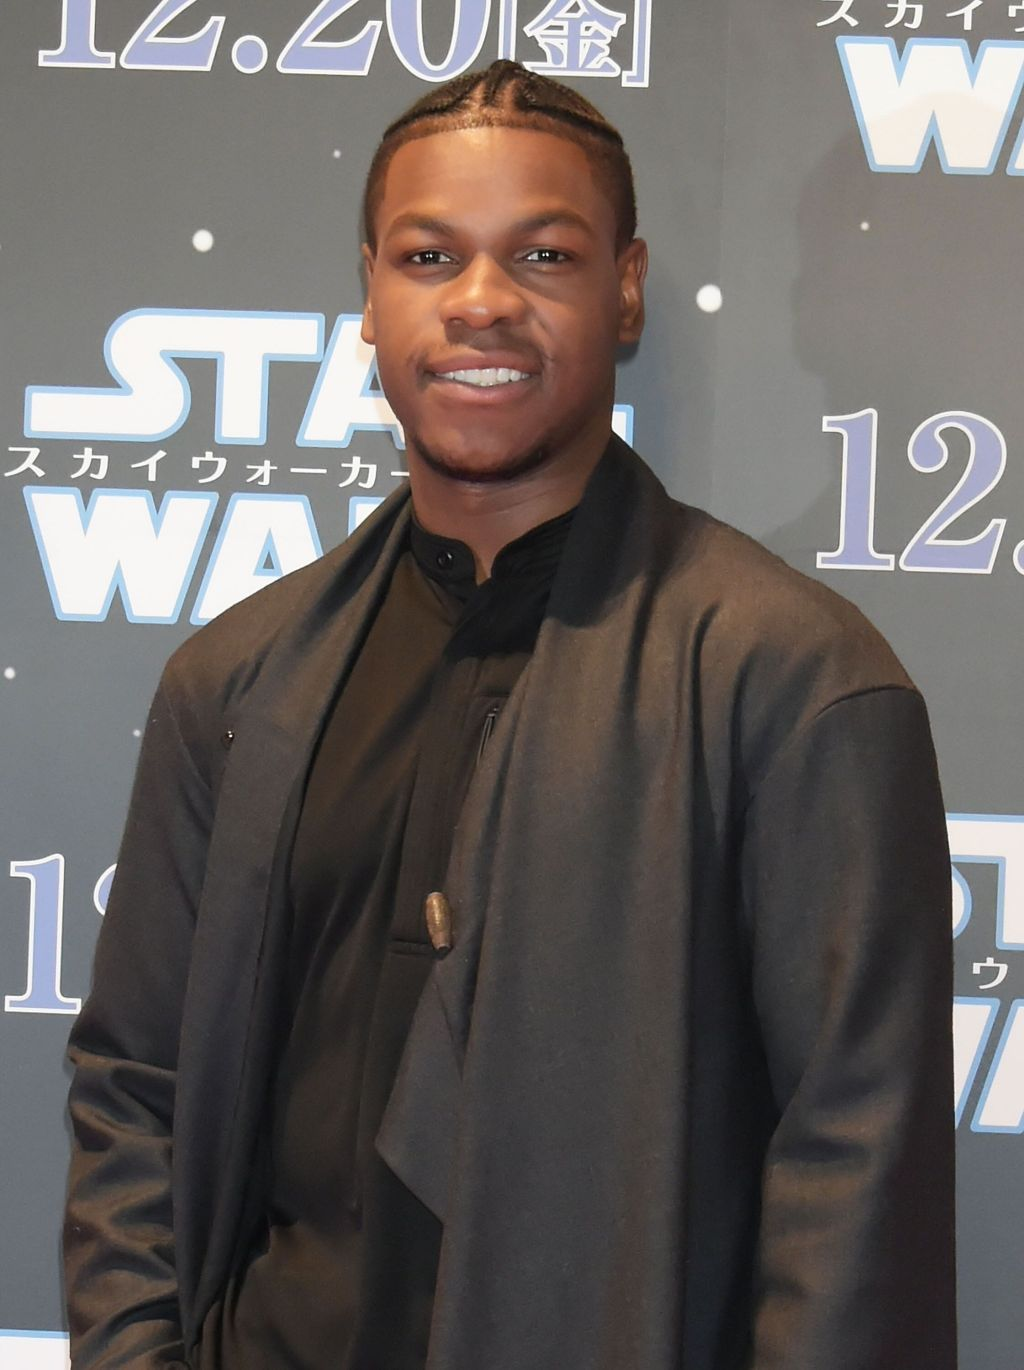 John Boyega Says Disney 'Gave All The Nuance' To White Star Wars Characters